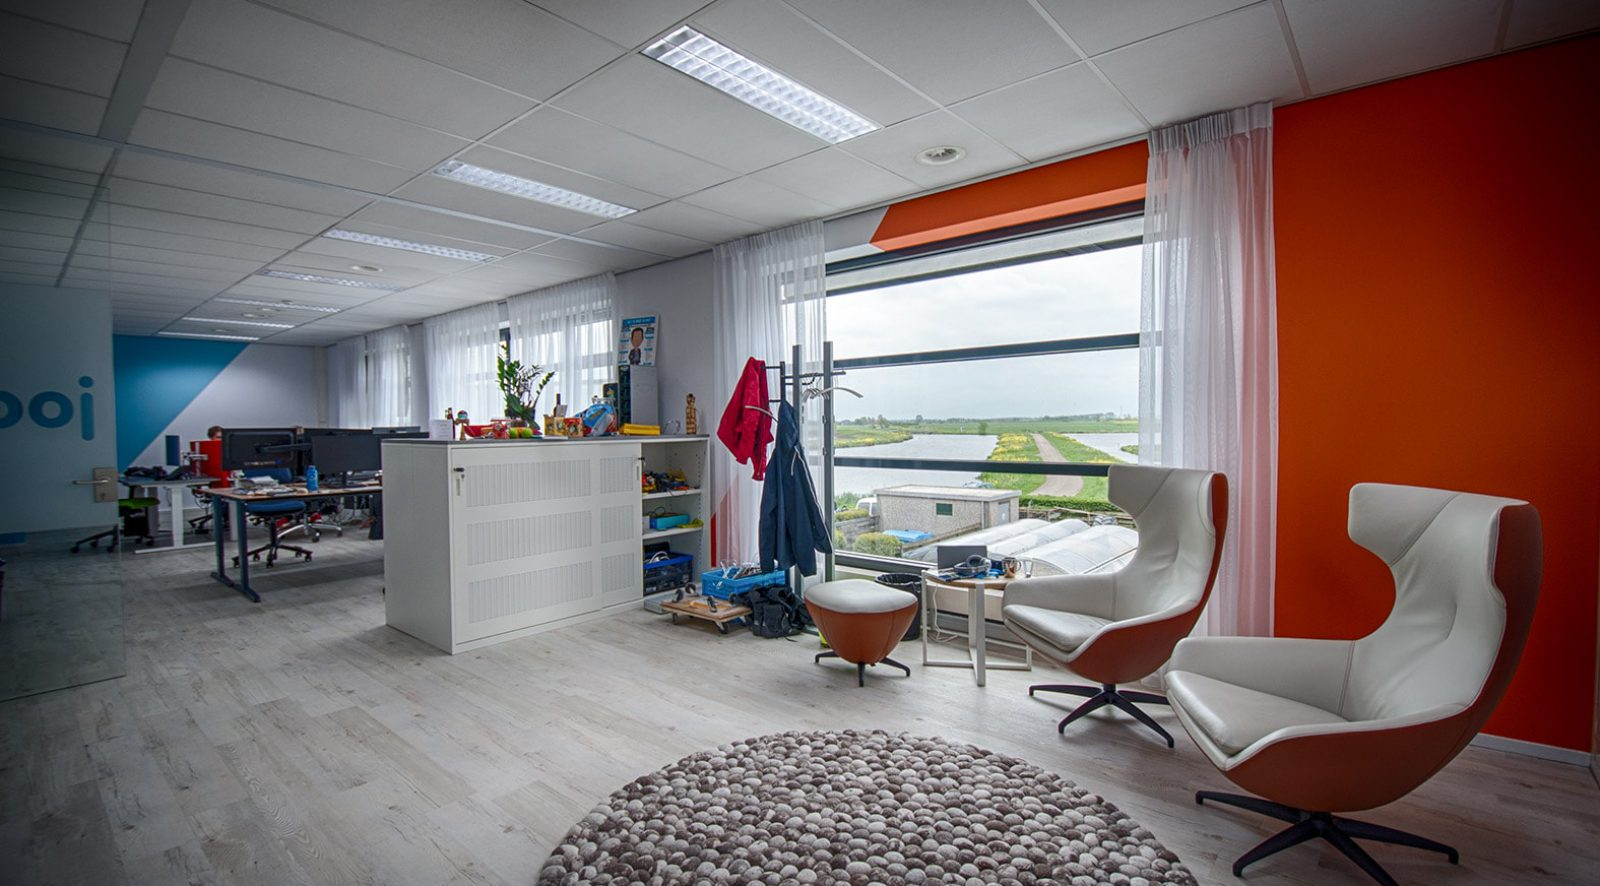 Kantoor Bodegraven | Crown Business Center Bodegraven